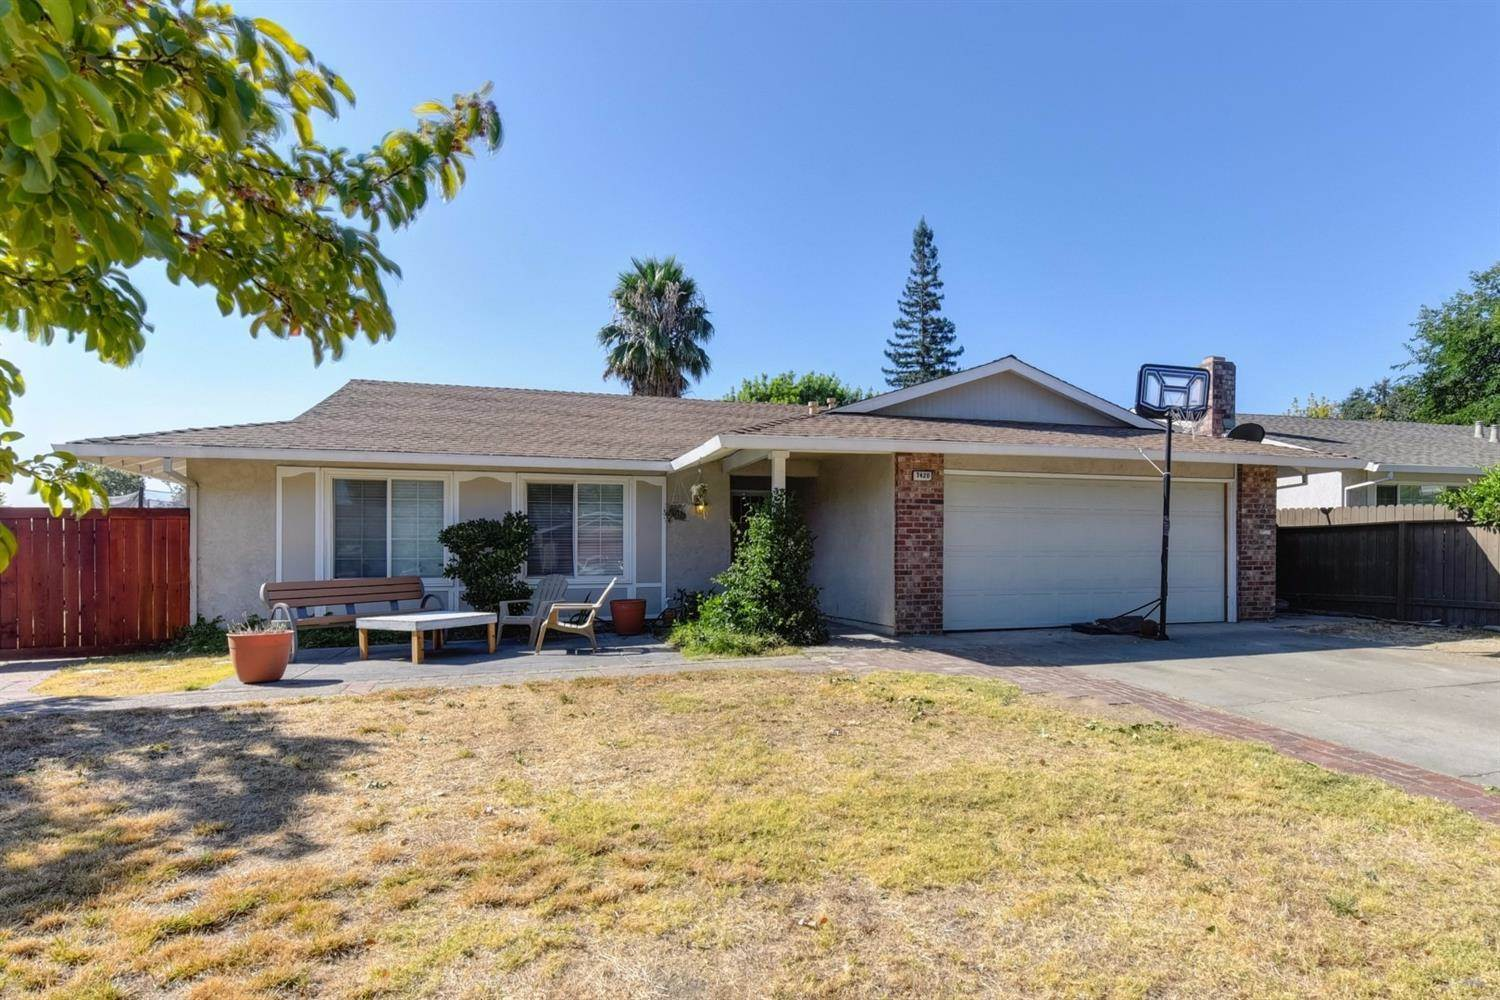 Photo of 7420 Parkvale Way  Citrus Heights  CA